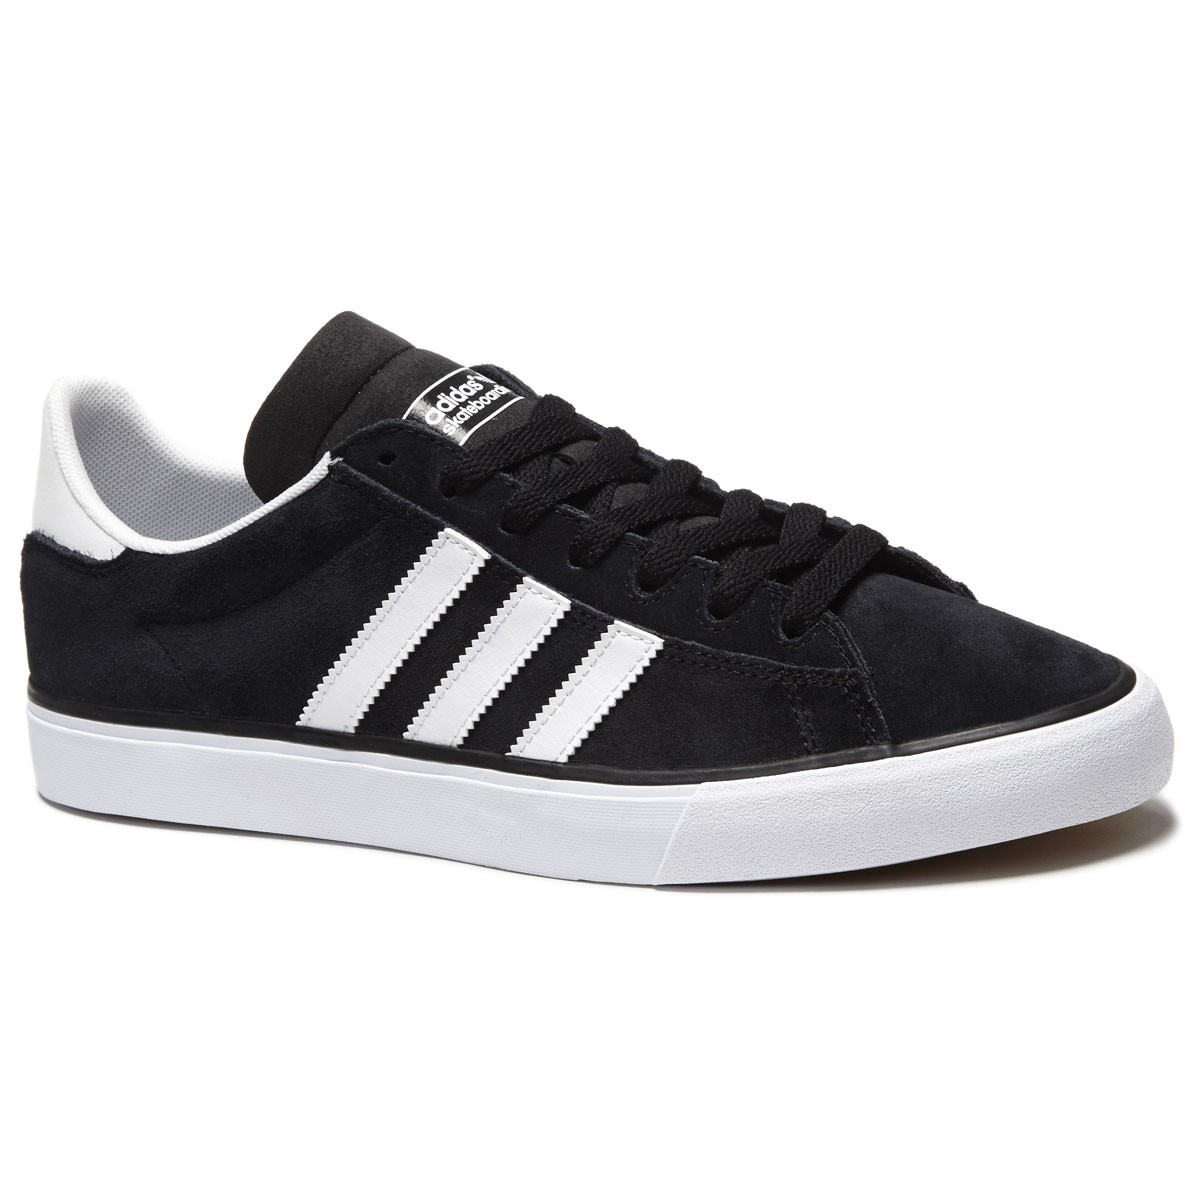 adidas campus vulc ii shoes USEQYYD